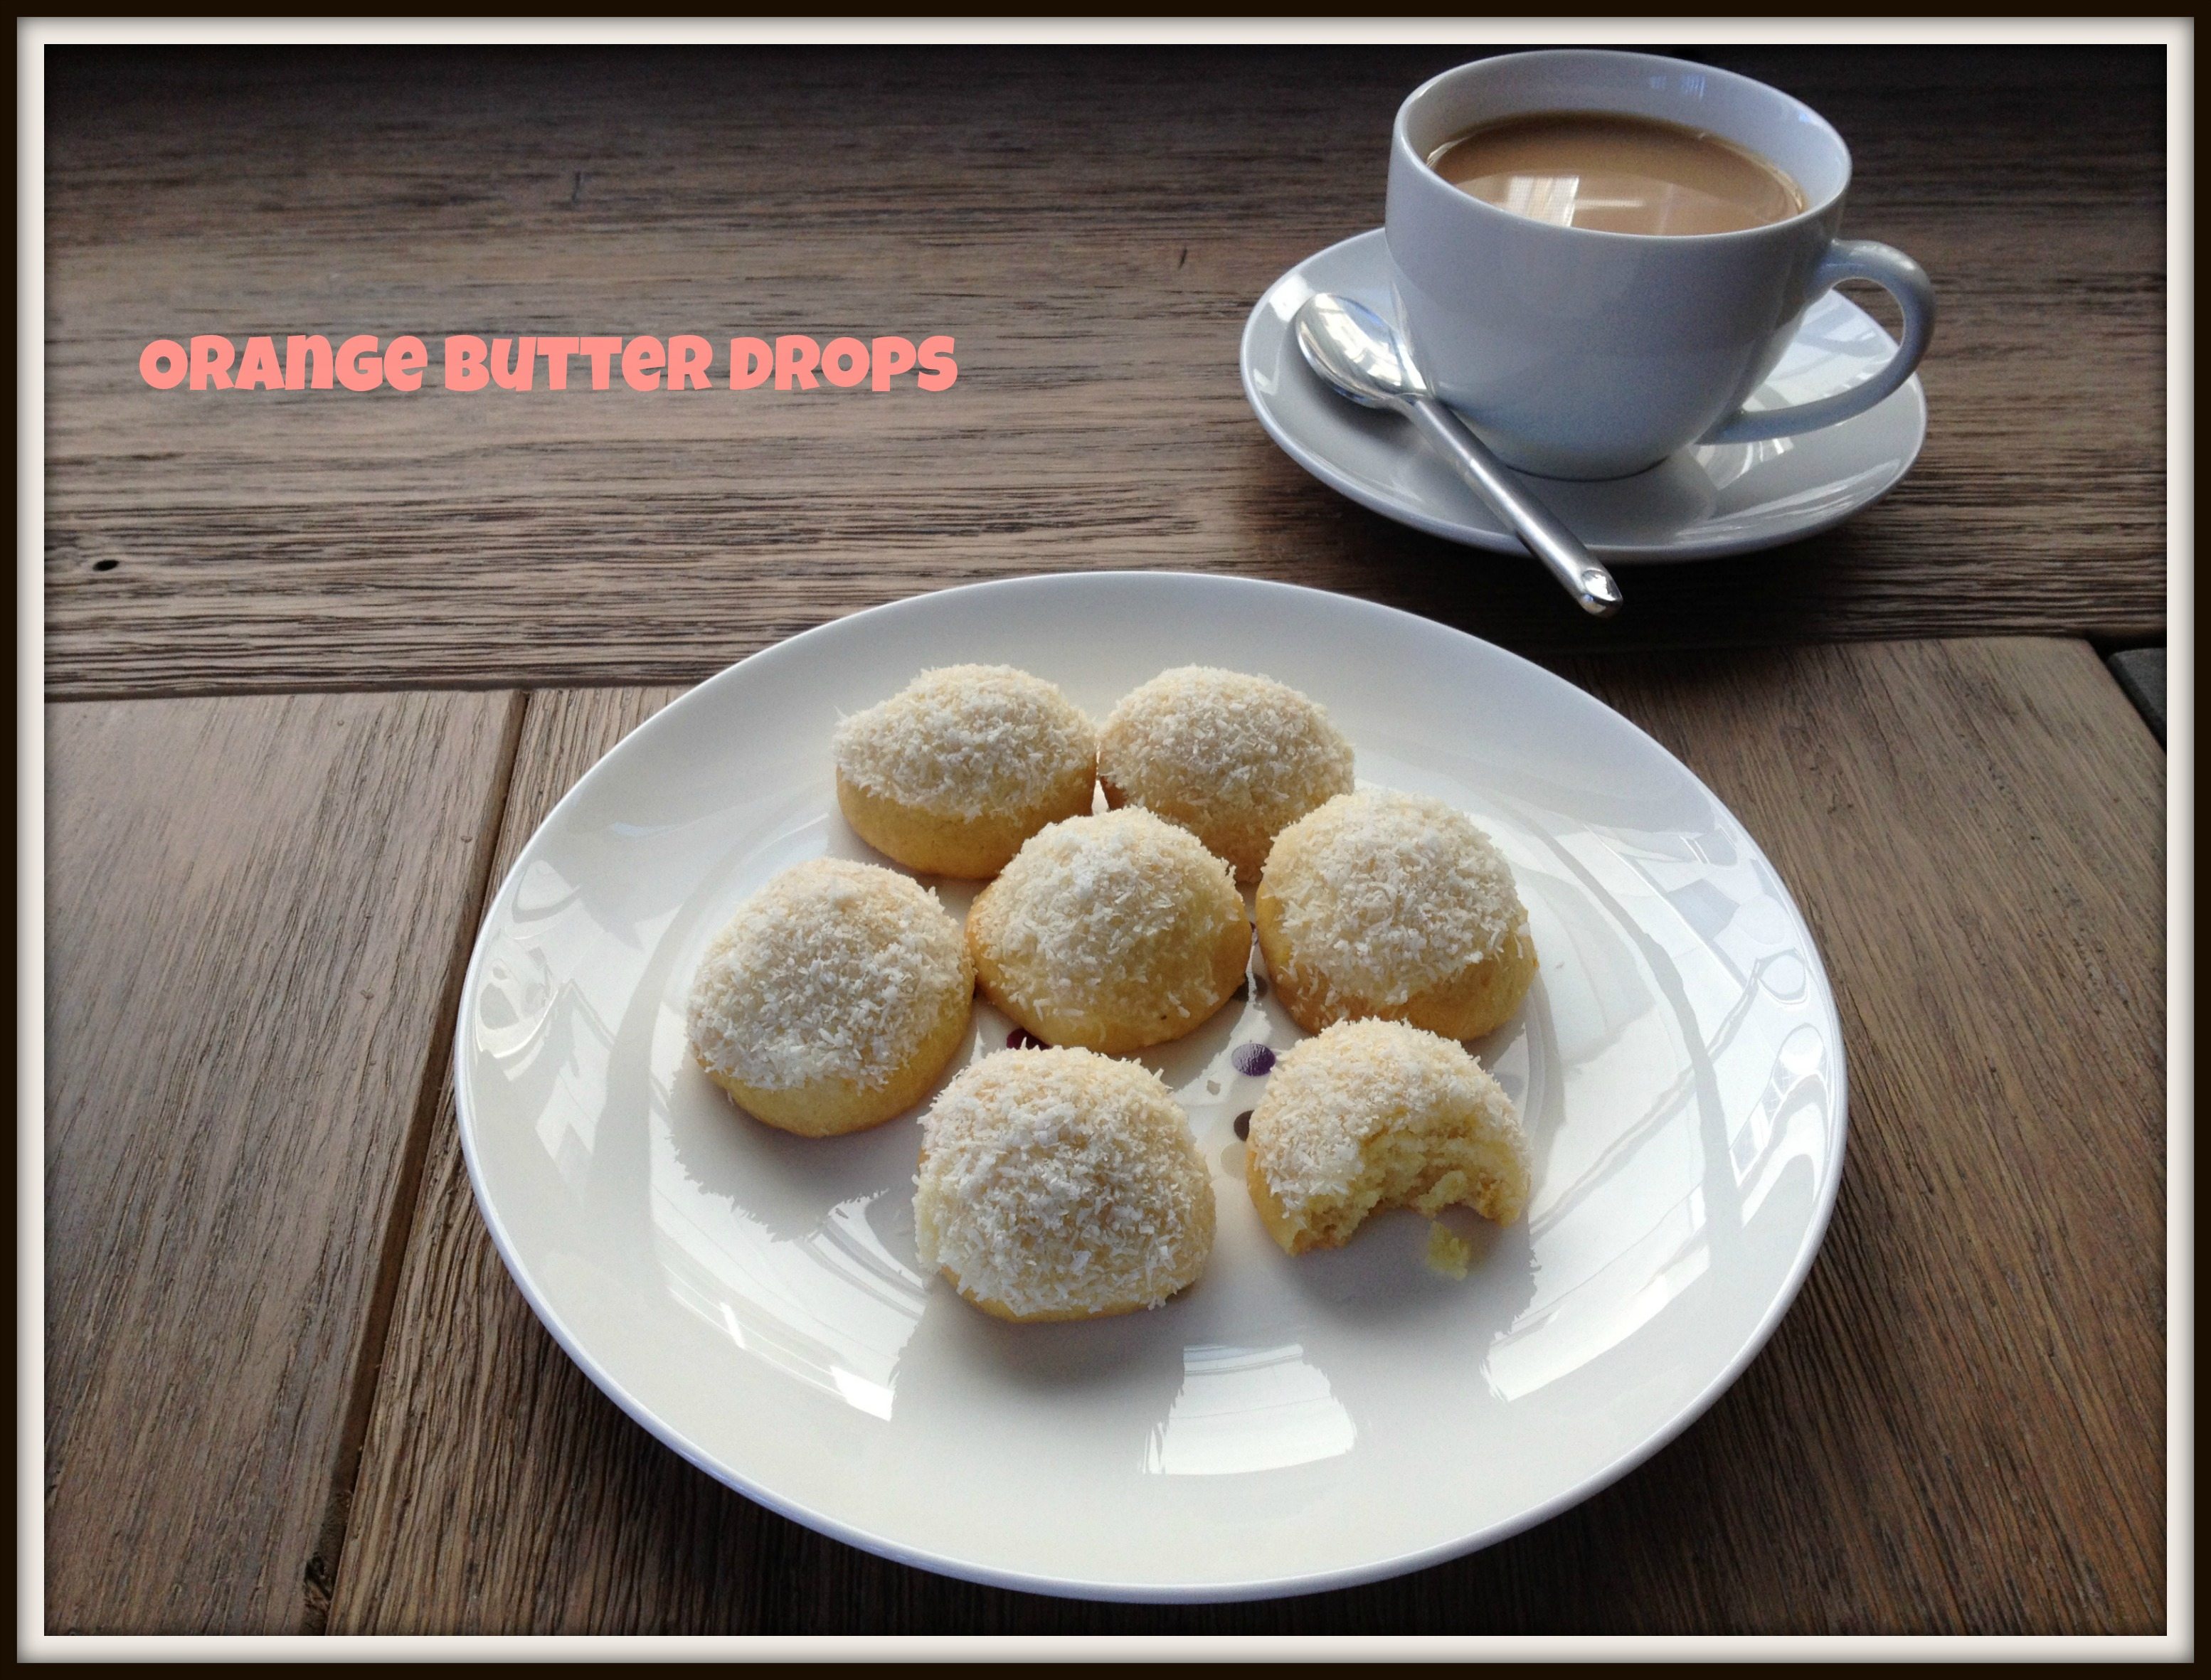 Orange Butter Drops With Shredded Coconut Recipes — Dishmaps